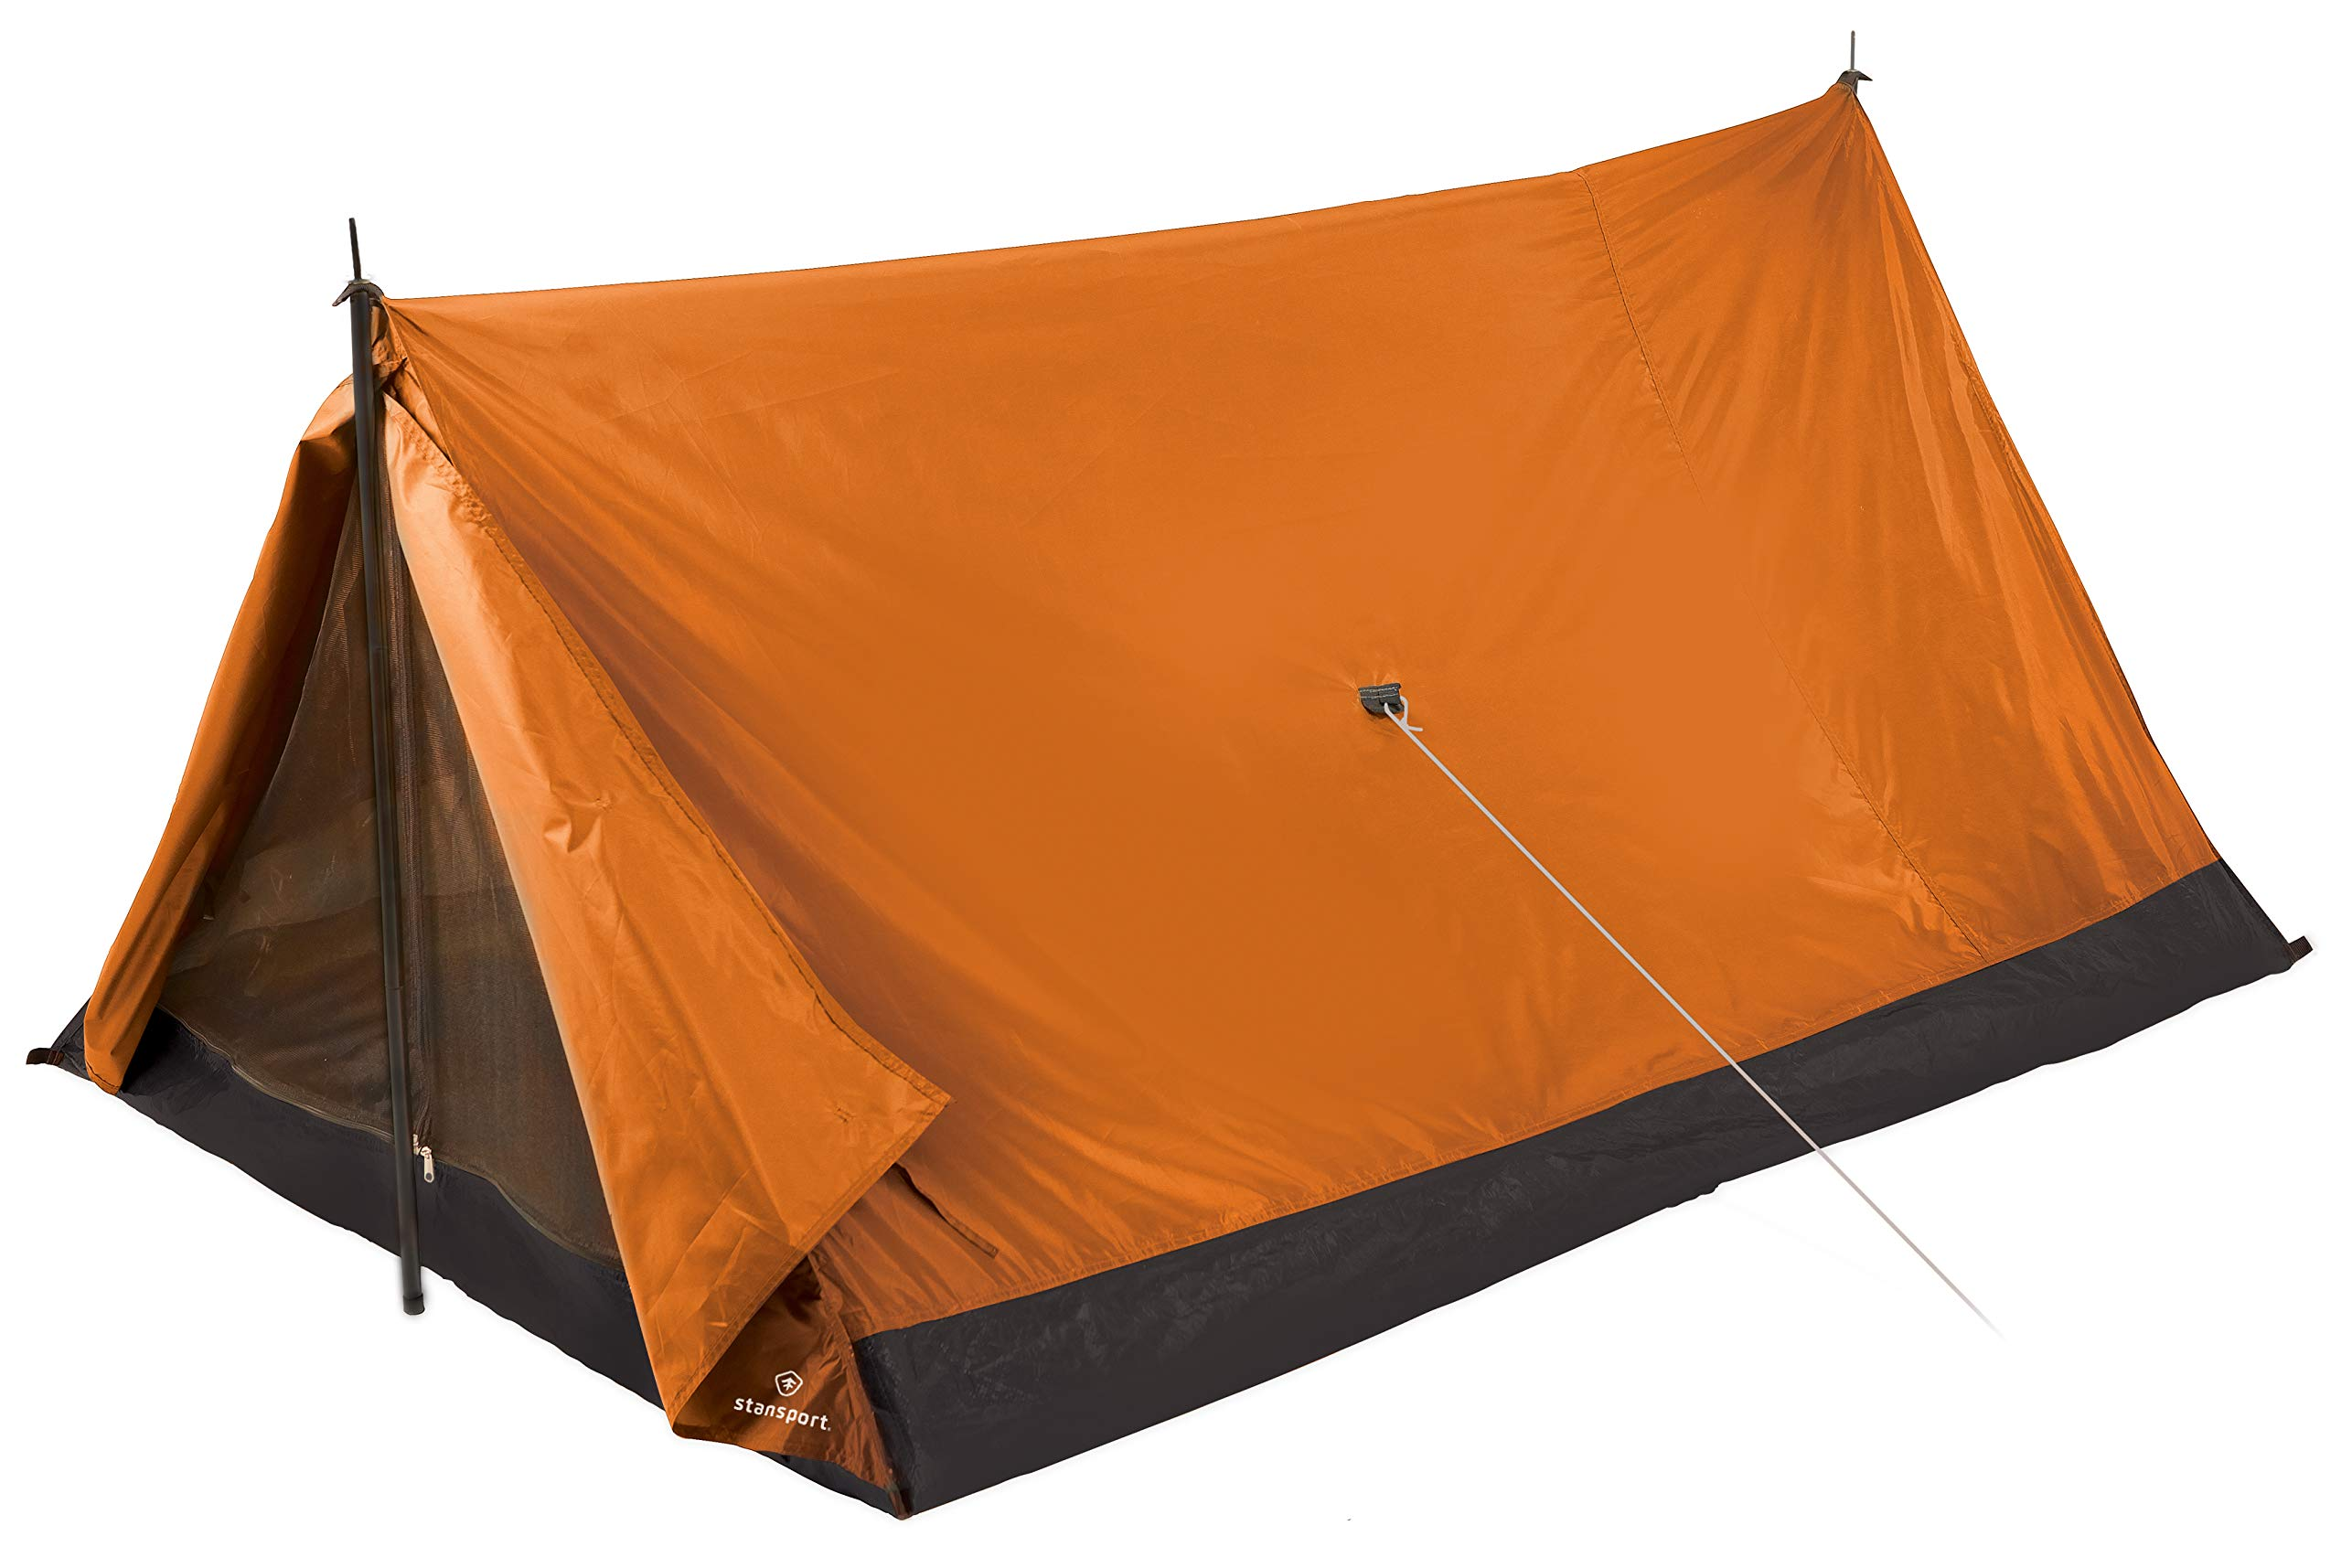 Stansport Scout Backpack and Camping Tent, Orange by Stansport